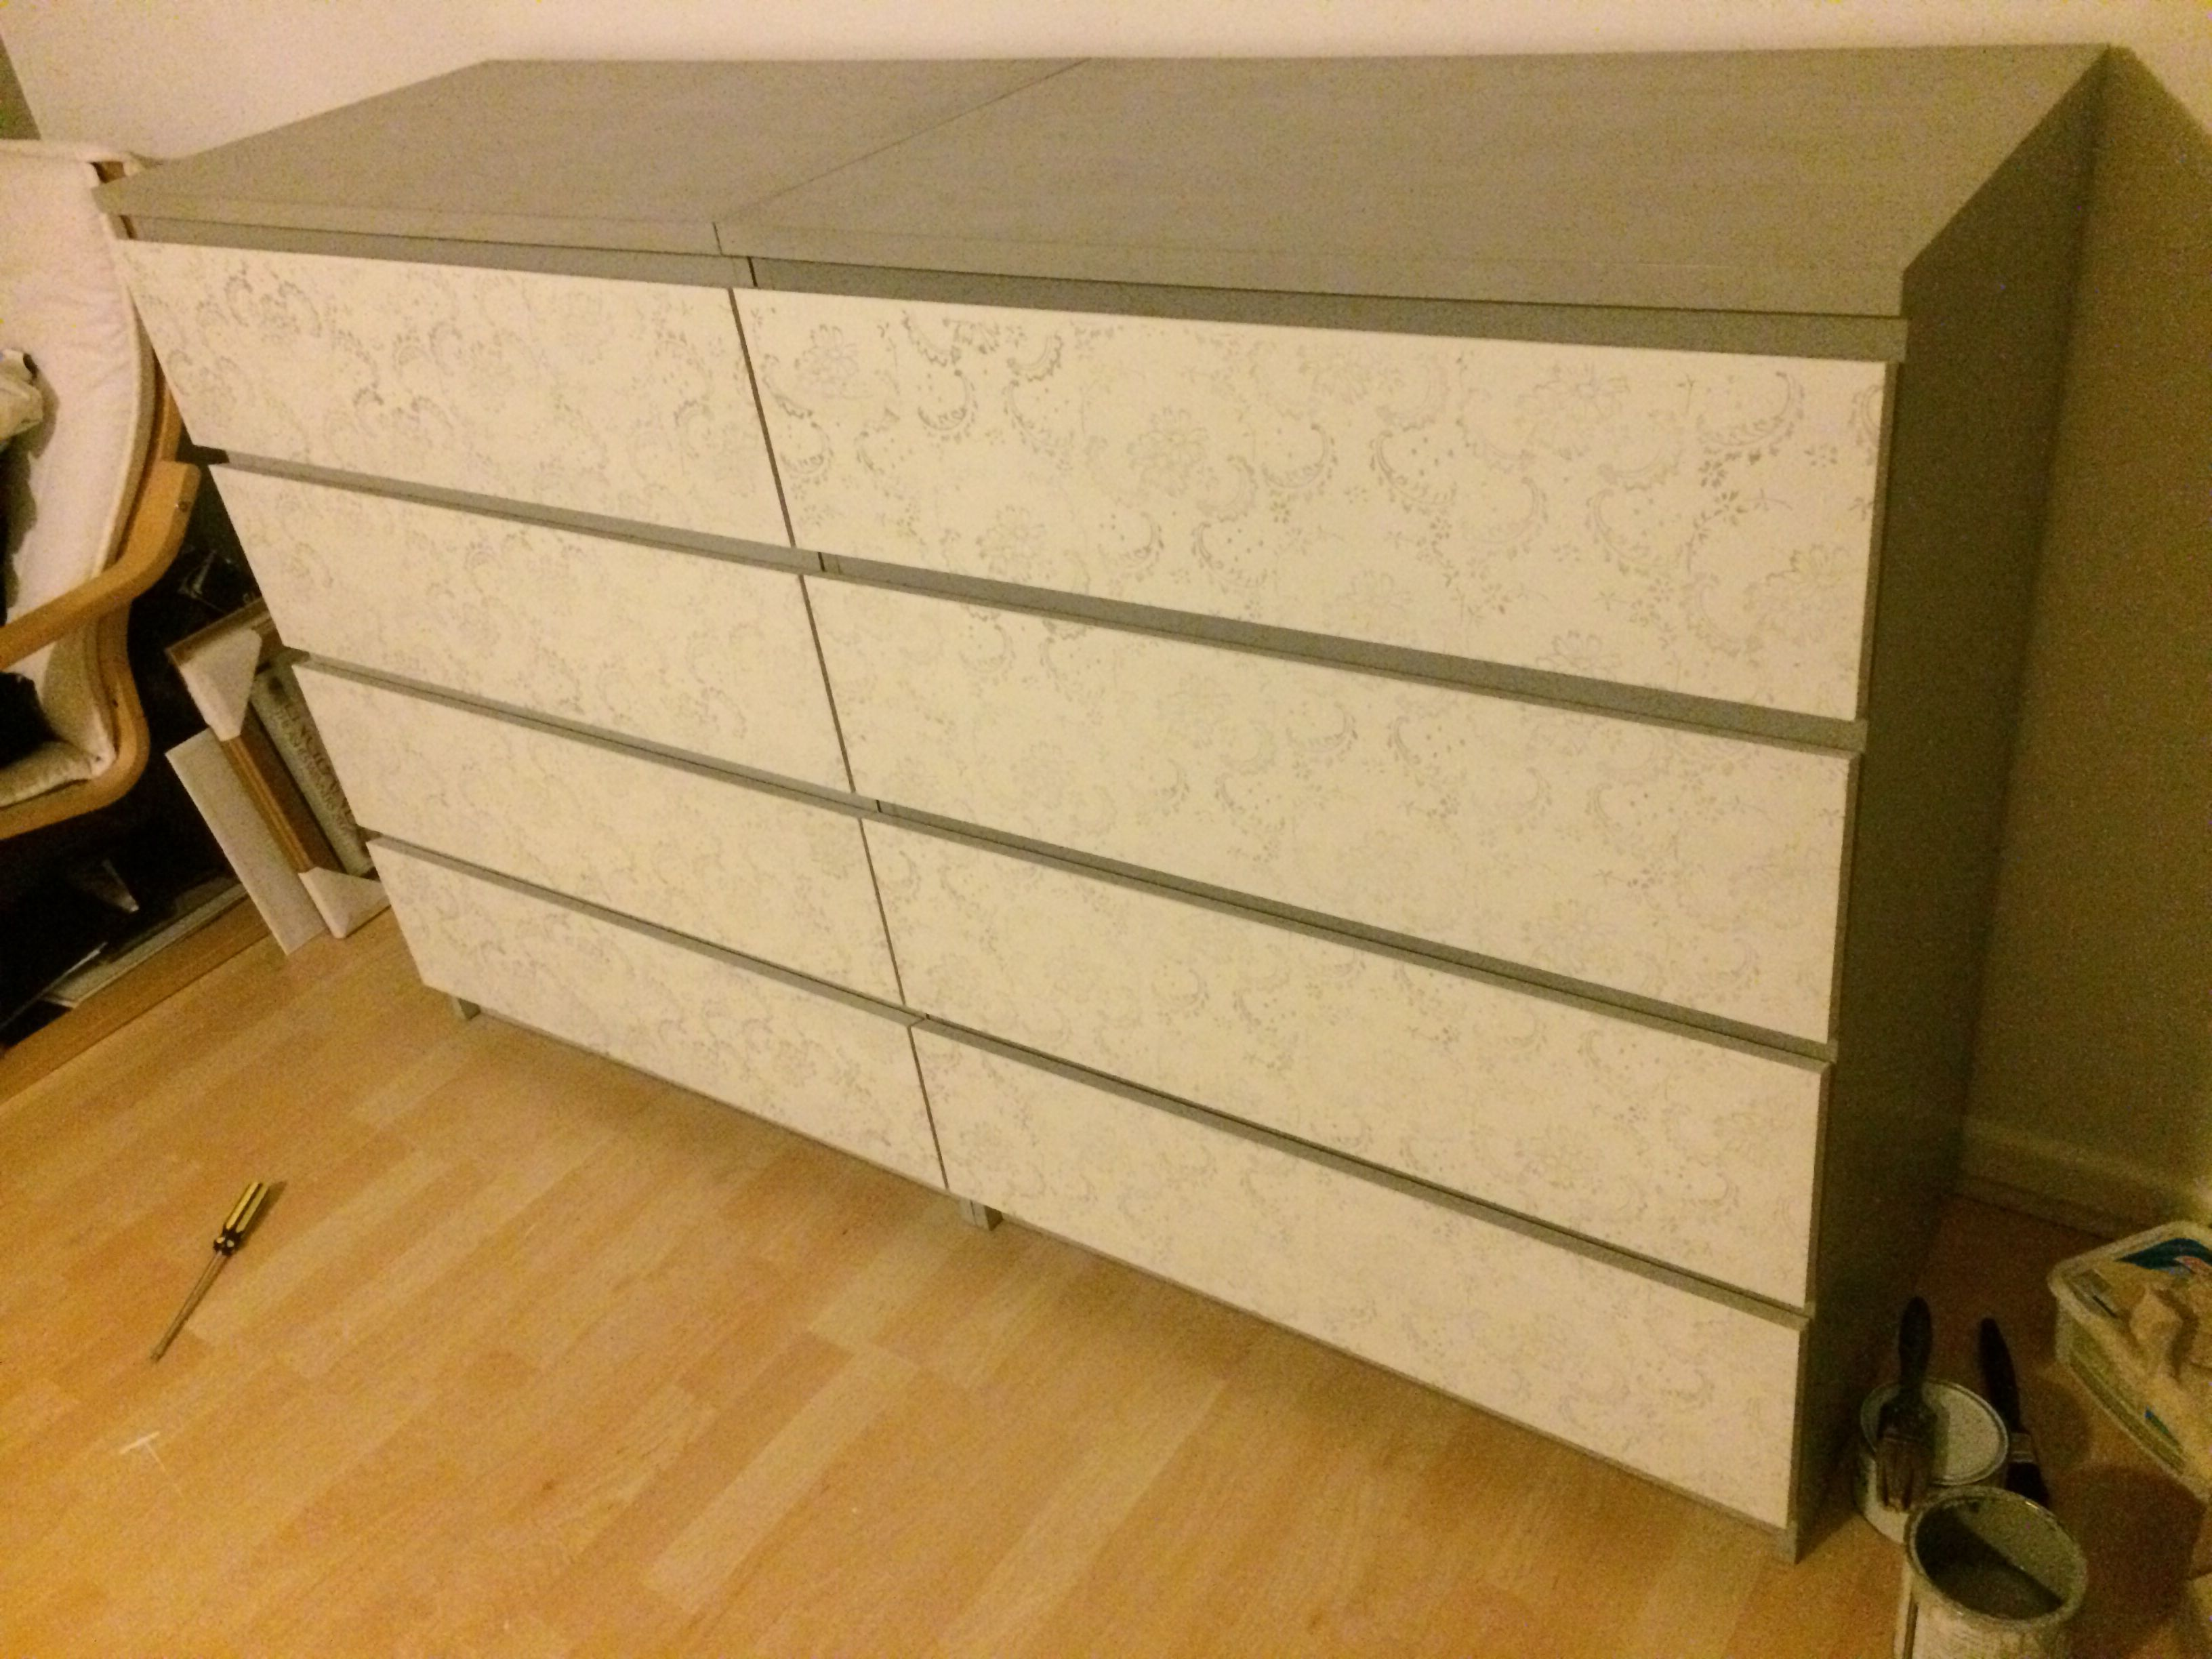 Ikea Oak Malm Dresser Given A Vintage Makeover Painted In Annie Sloan Paris Grey And Old White